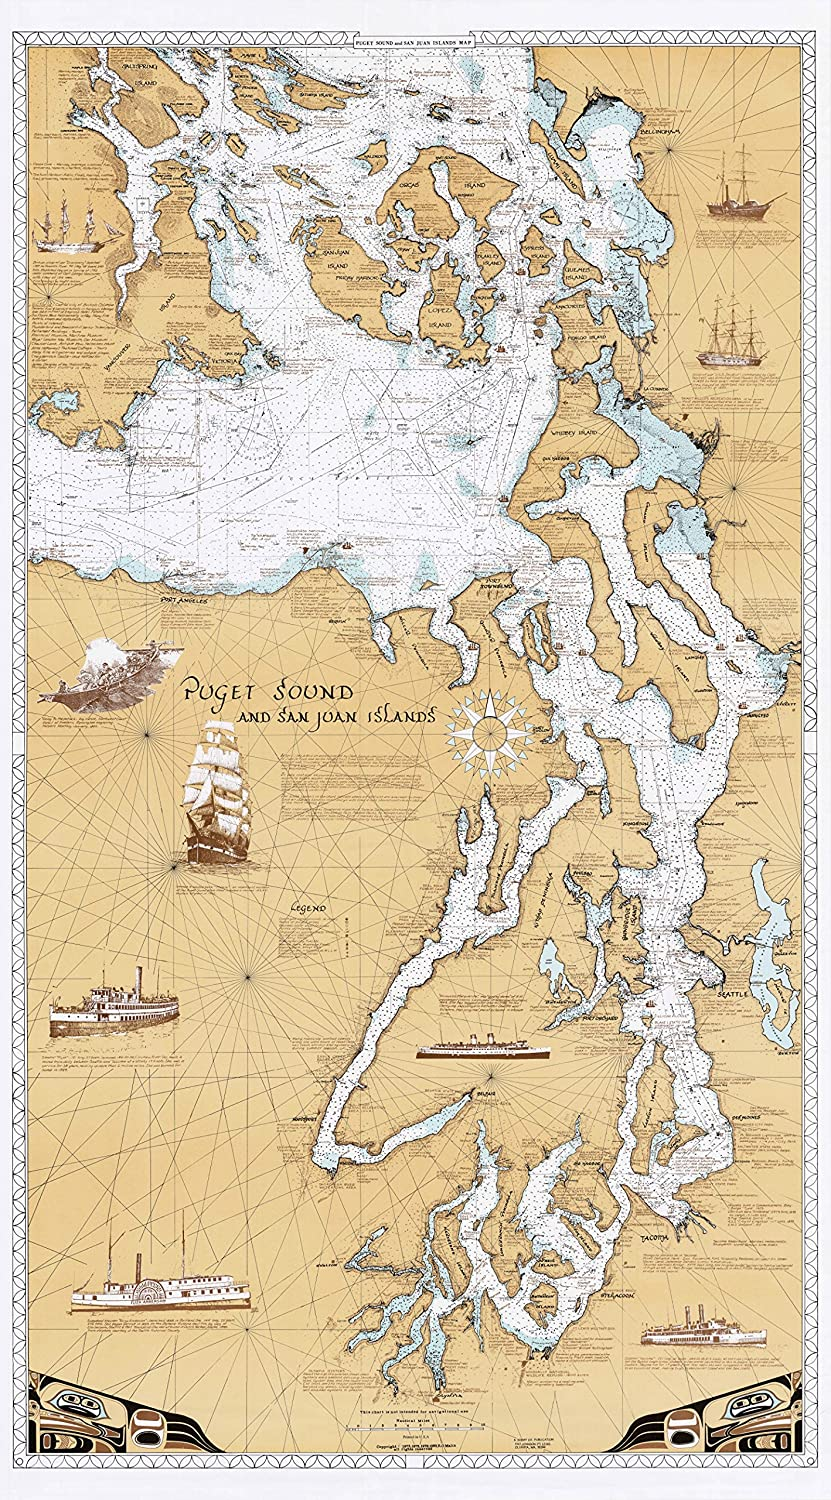 Sobay Map P001 - Puget Sound & San Juan Islands Chart - 30x54 Wall Map - Paper or Laminated (Paper)